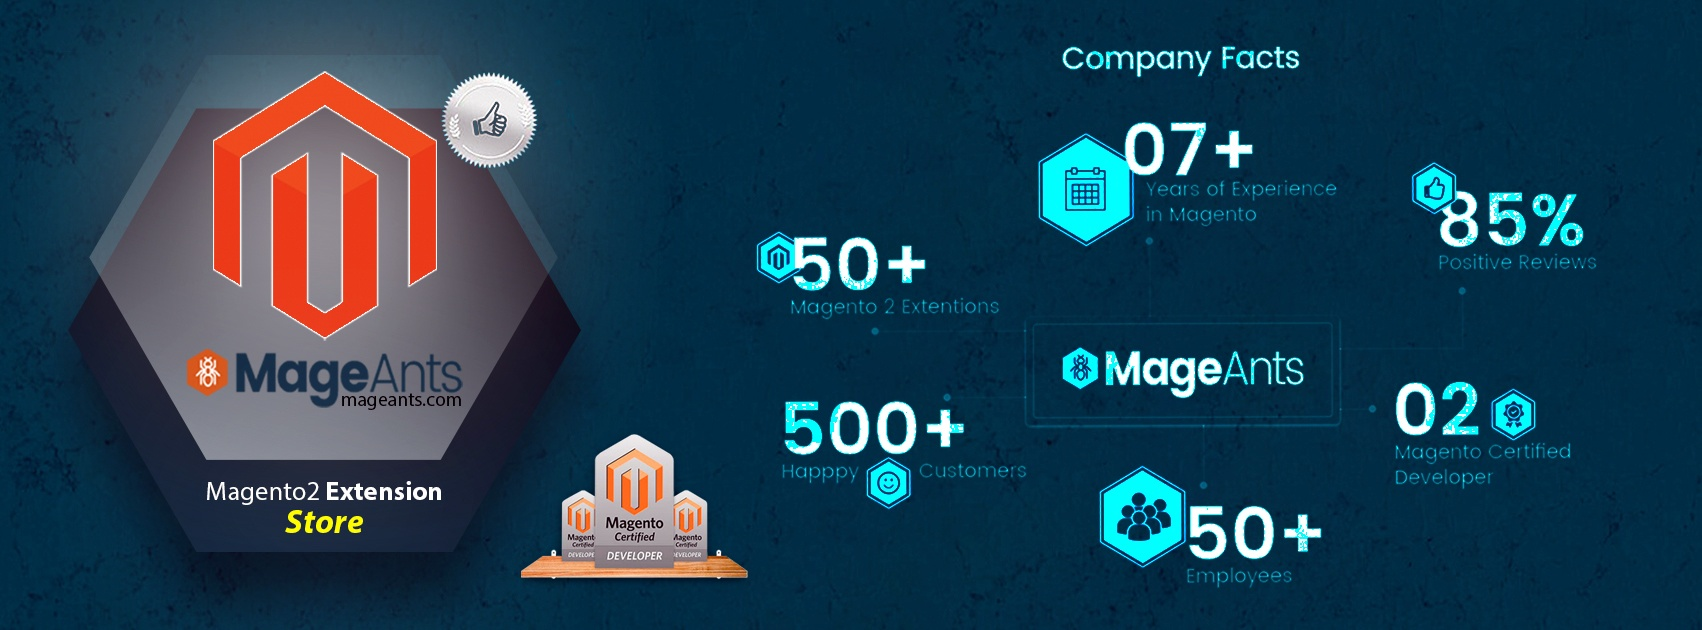 Magento News: Gain hegemony in E-com by using these Magento 2 extensions